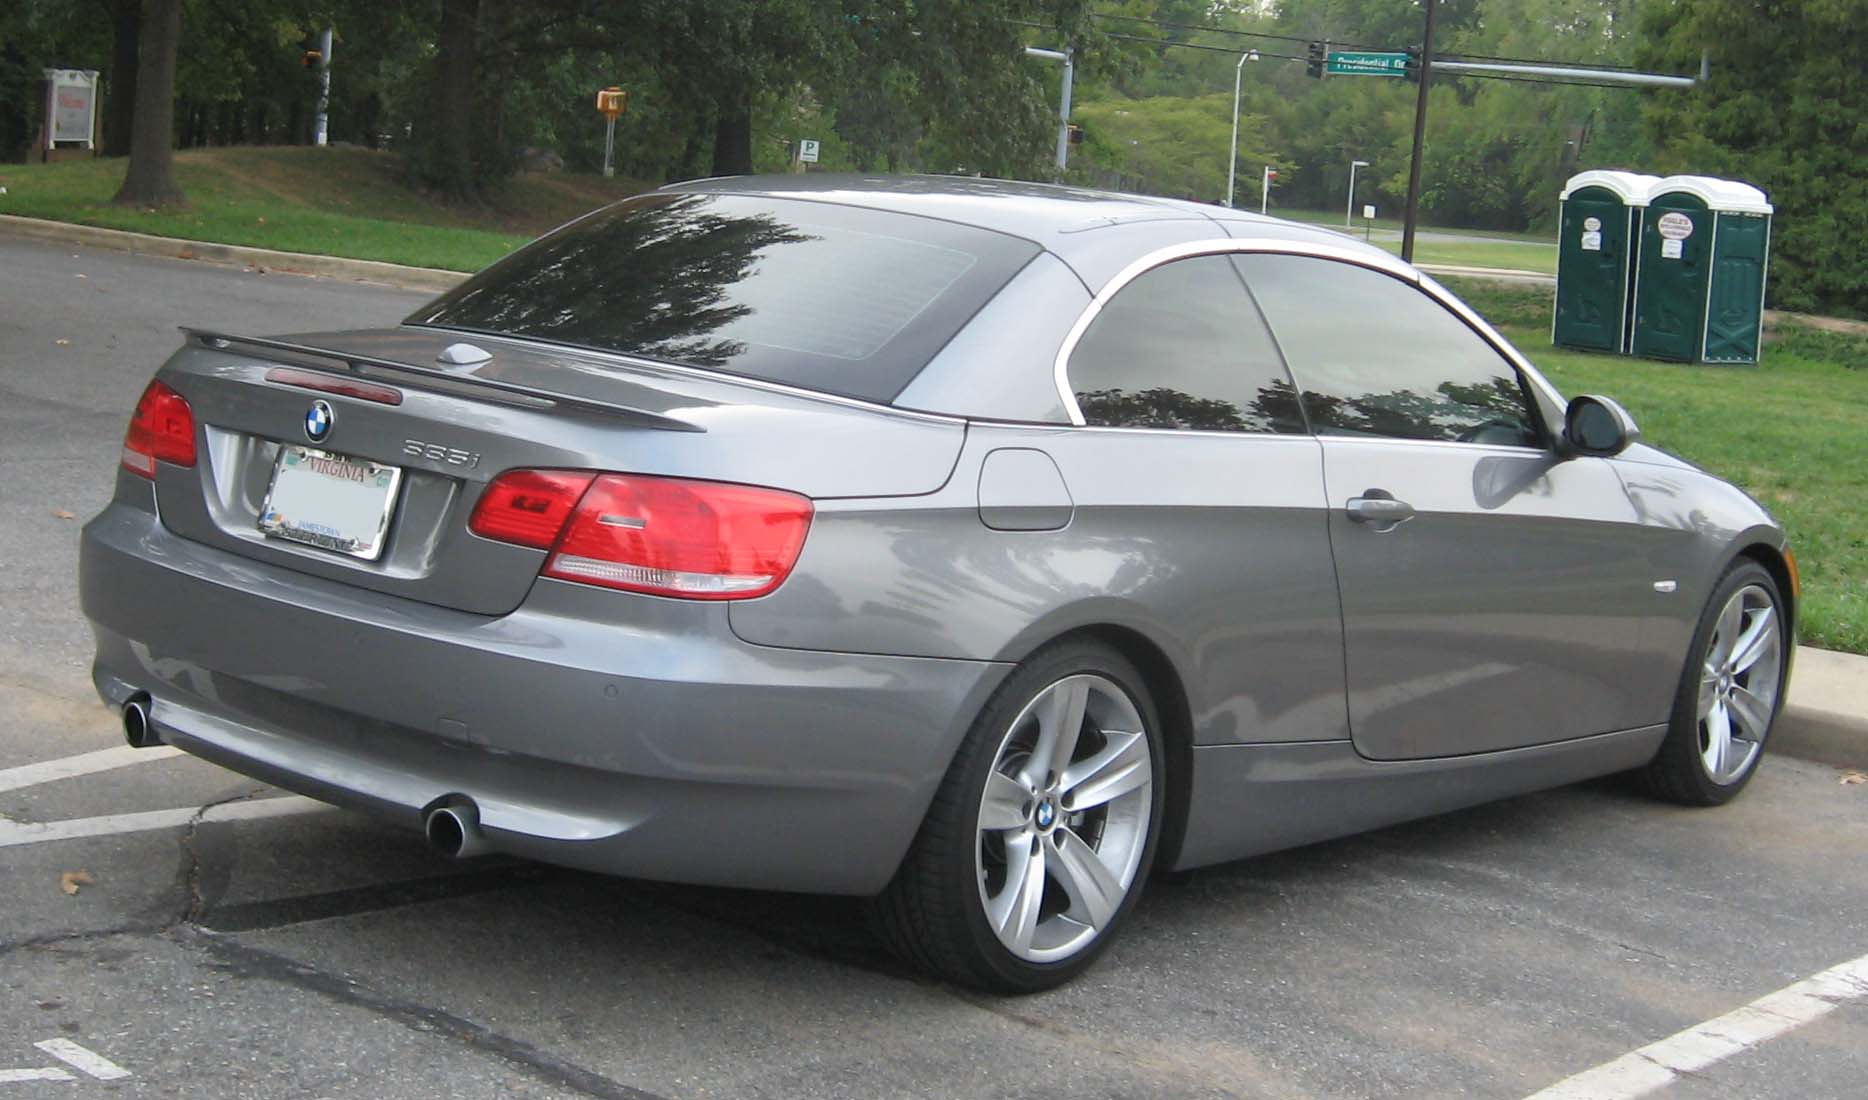 FileBMW335iconvertiblerearjpg  Wikimedia Commons